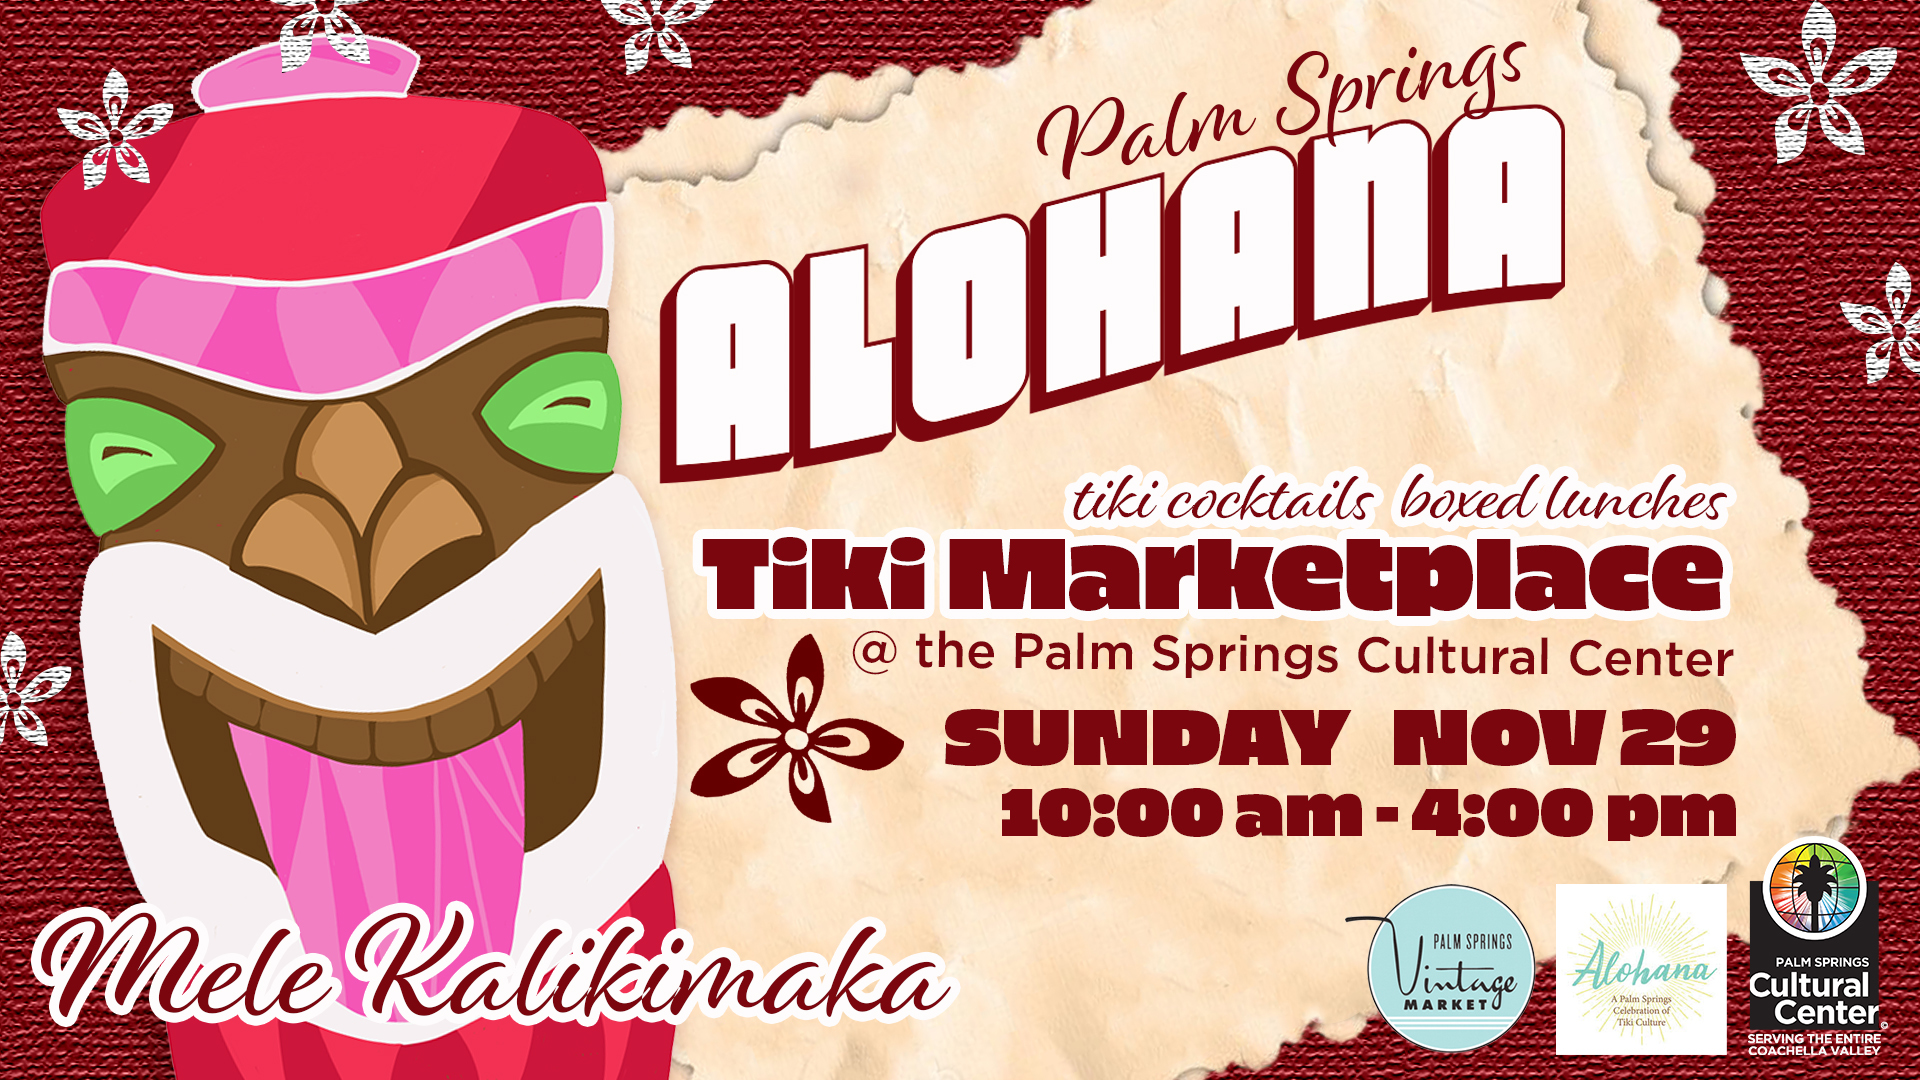 Palm Springs Alohana: Tiki Marketpalace at the Camelot Theatre at the Palm Springs Cultural Center